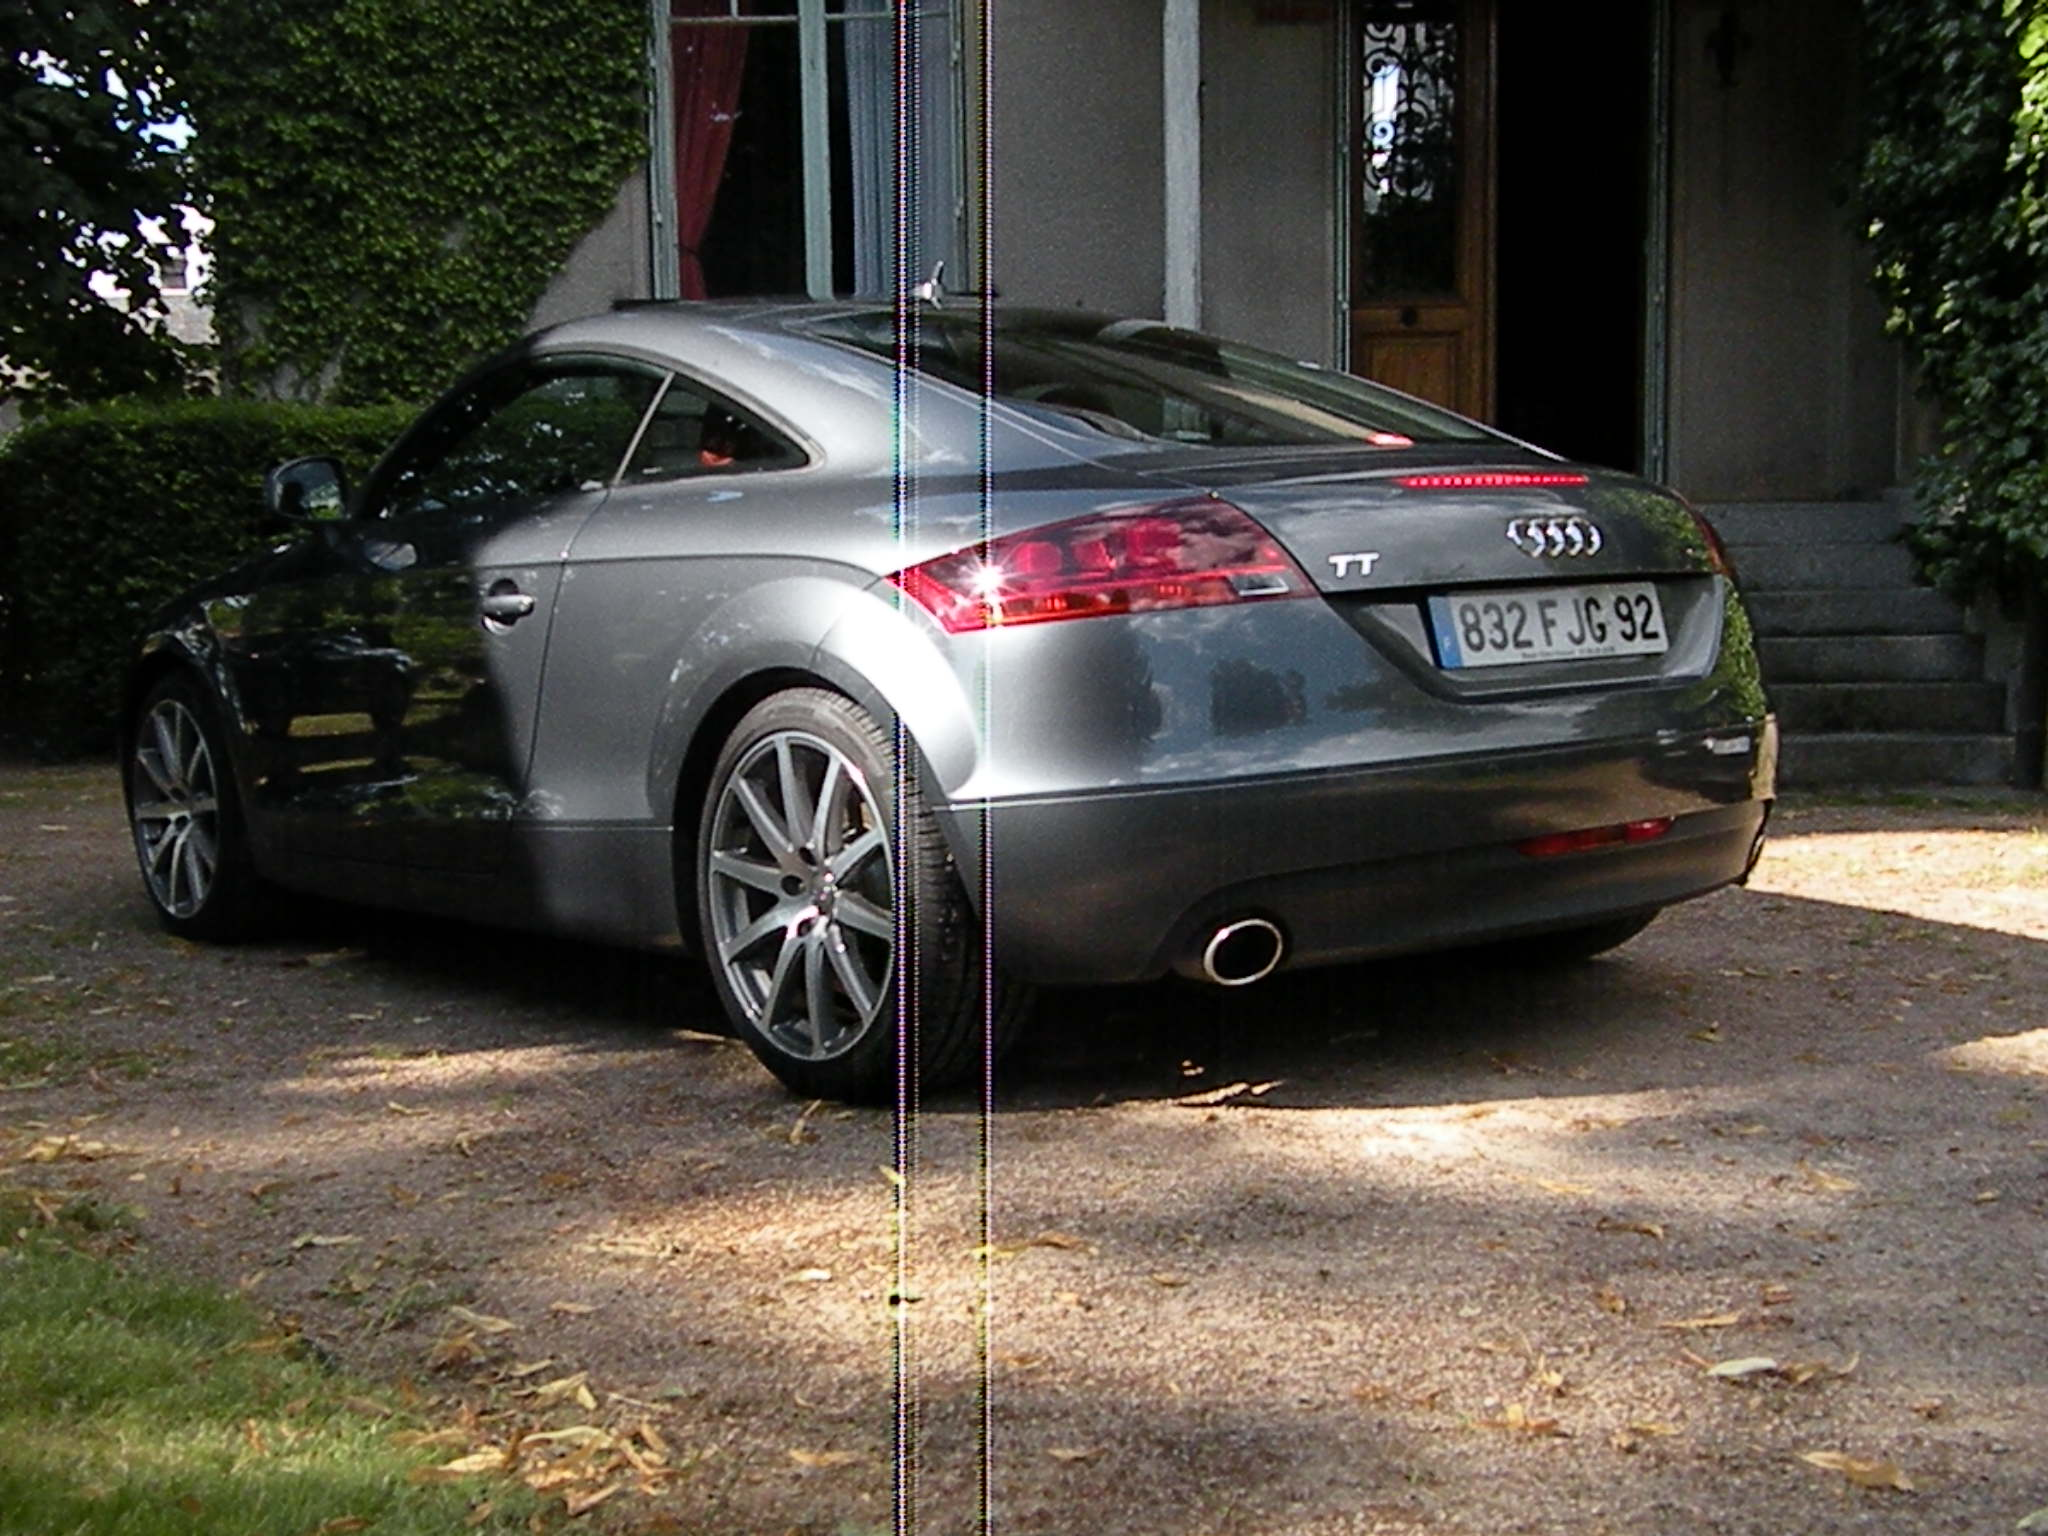 audi tt v6 3 2 quattro 2eme generation 2006 auto lifestyle. Black Bedroom Furniture Sets. Home Design Ideas